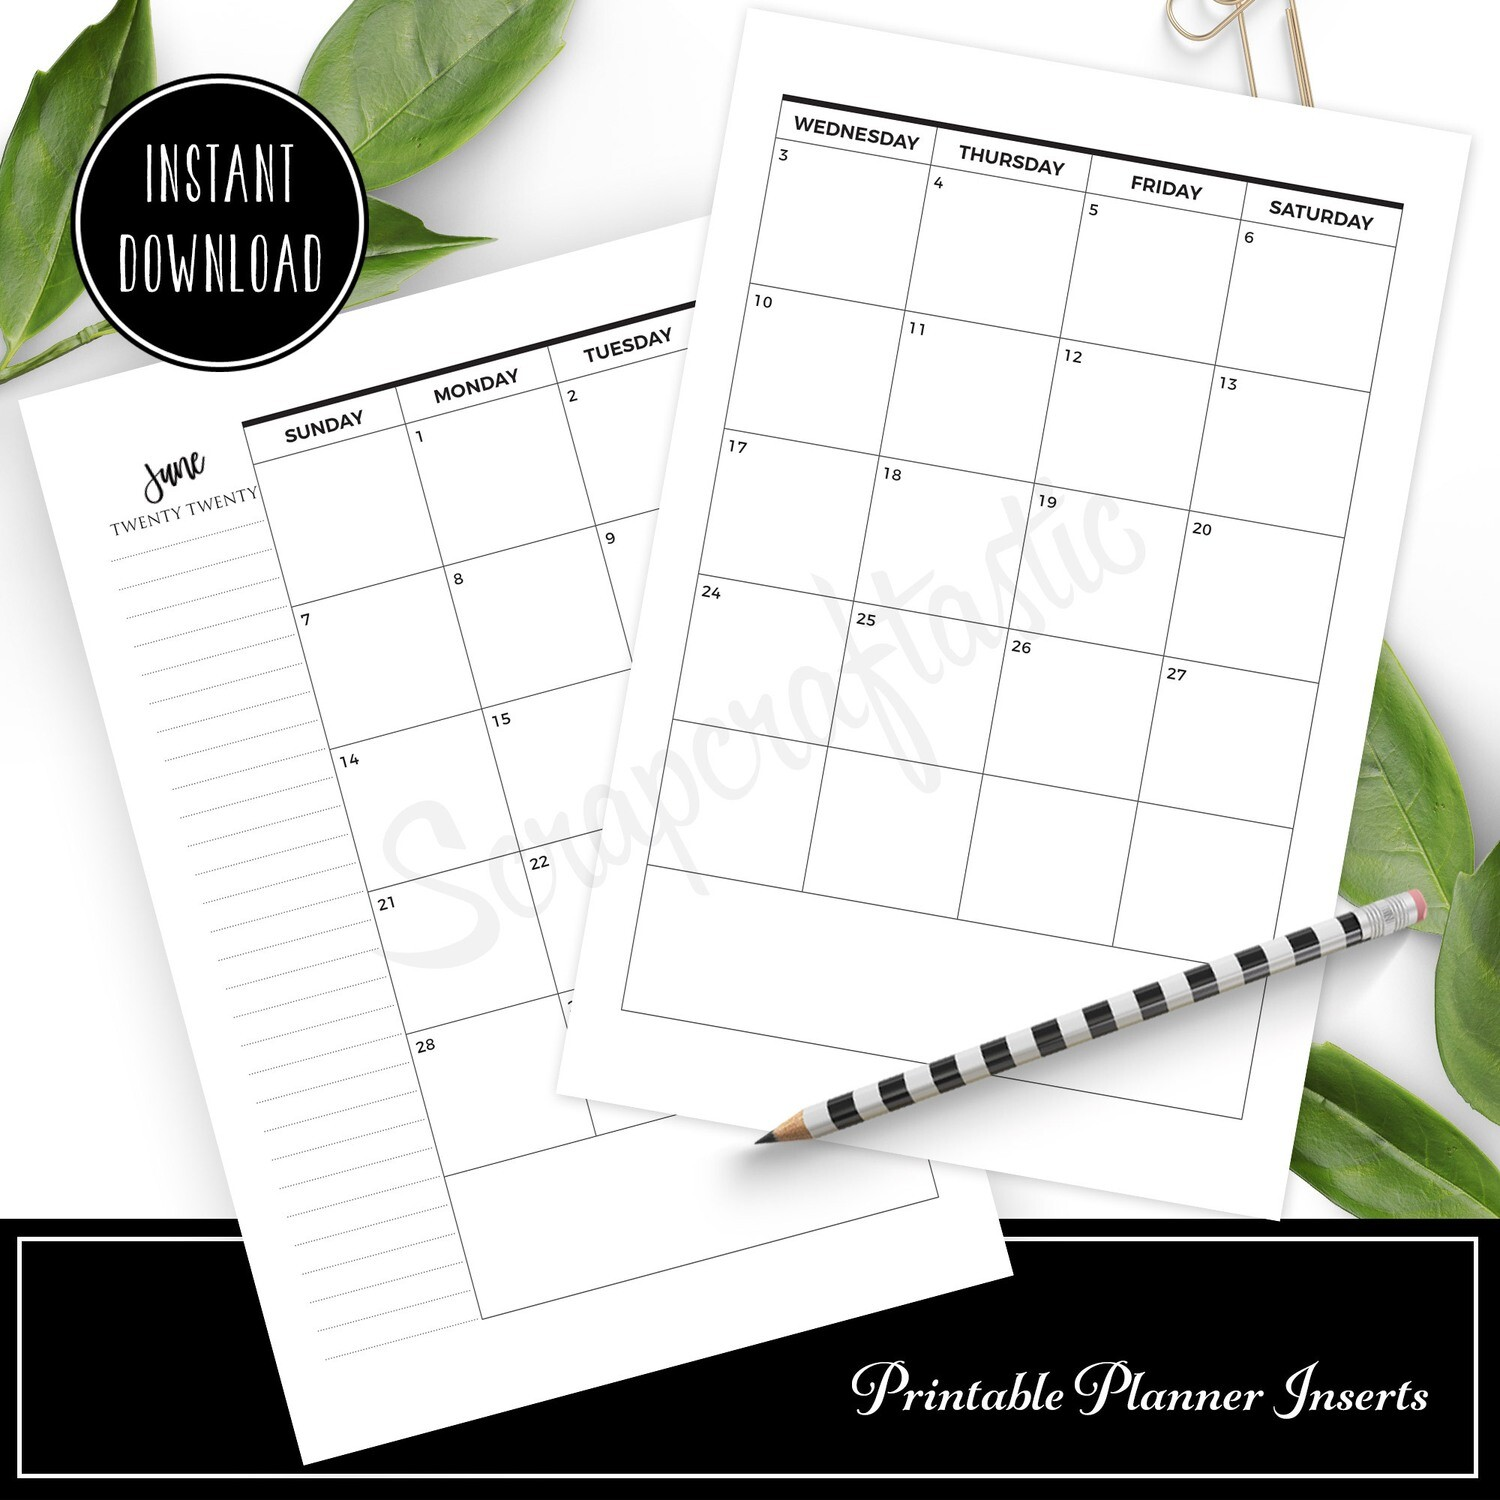 FULL PAGE LETTER SIZE - 2020 Dated Monthly Calendar Printable Planner Inserts